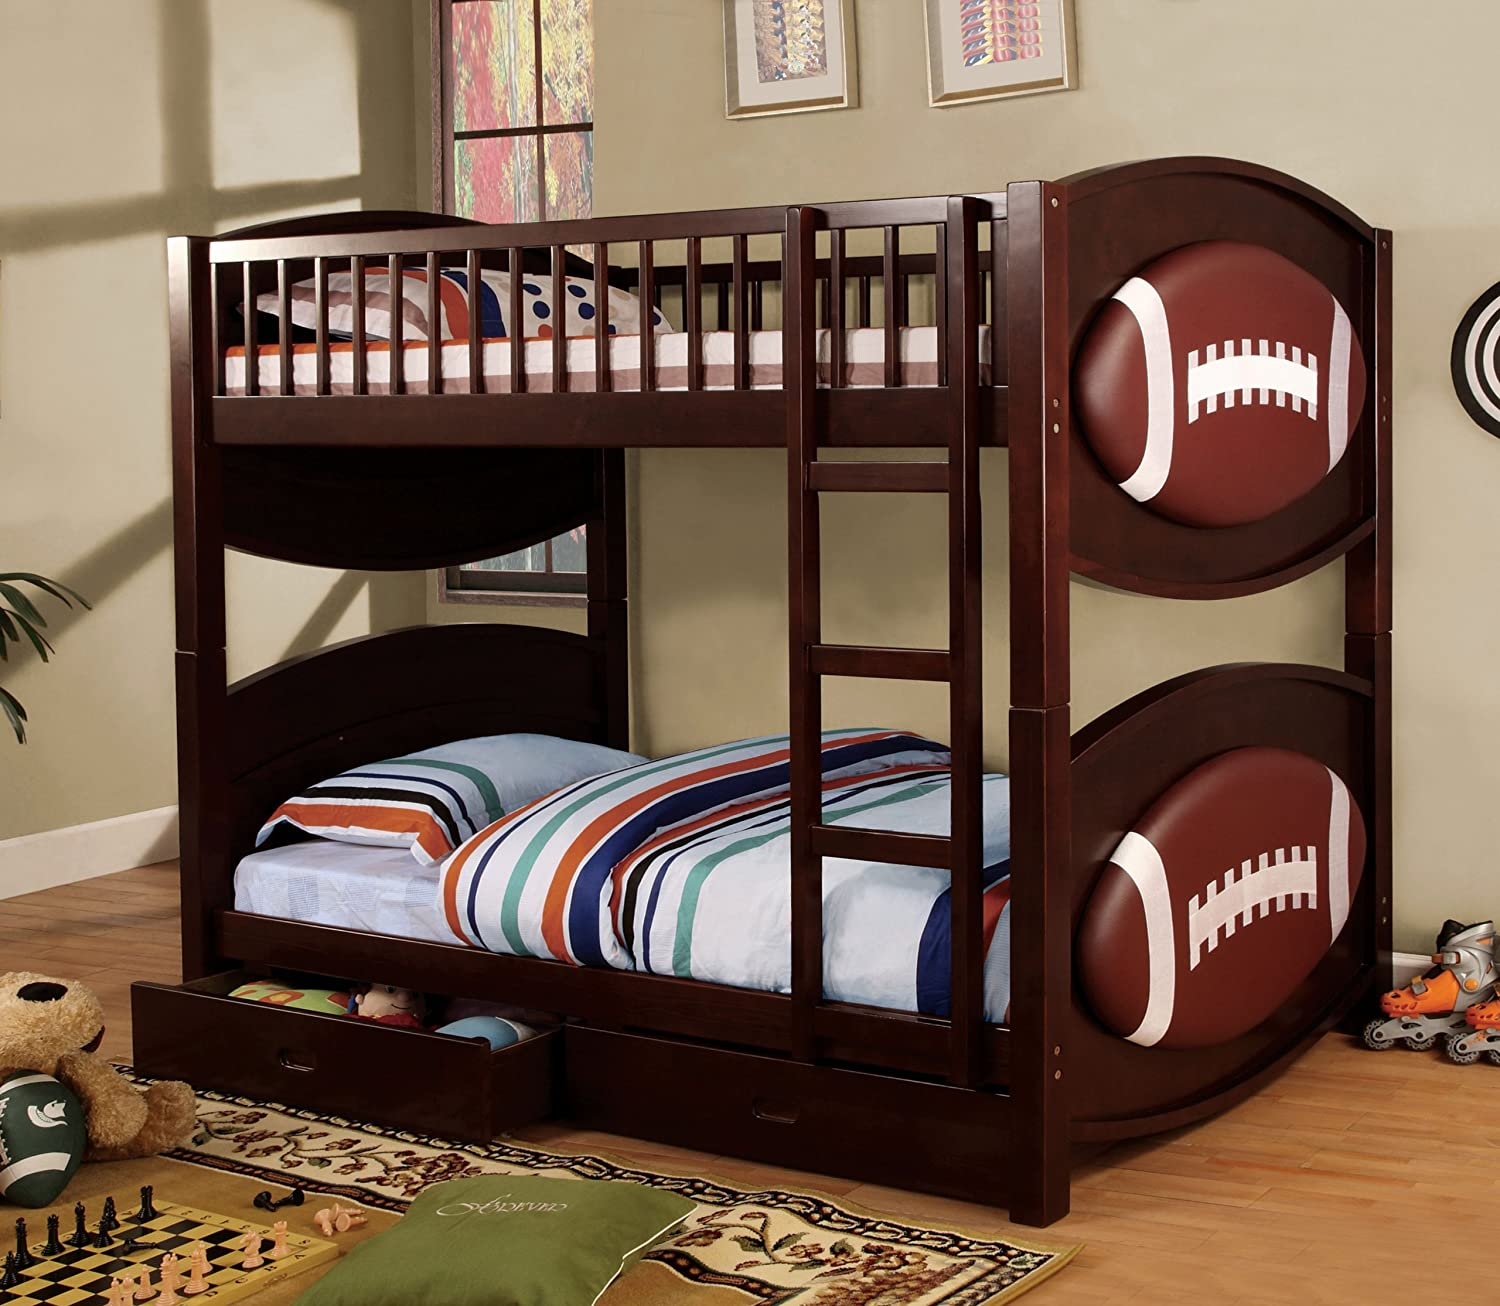 Amazoncom Furniture Of America Baseball Bunk Bed With 2Drawers